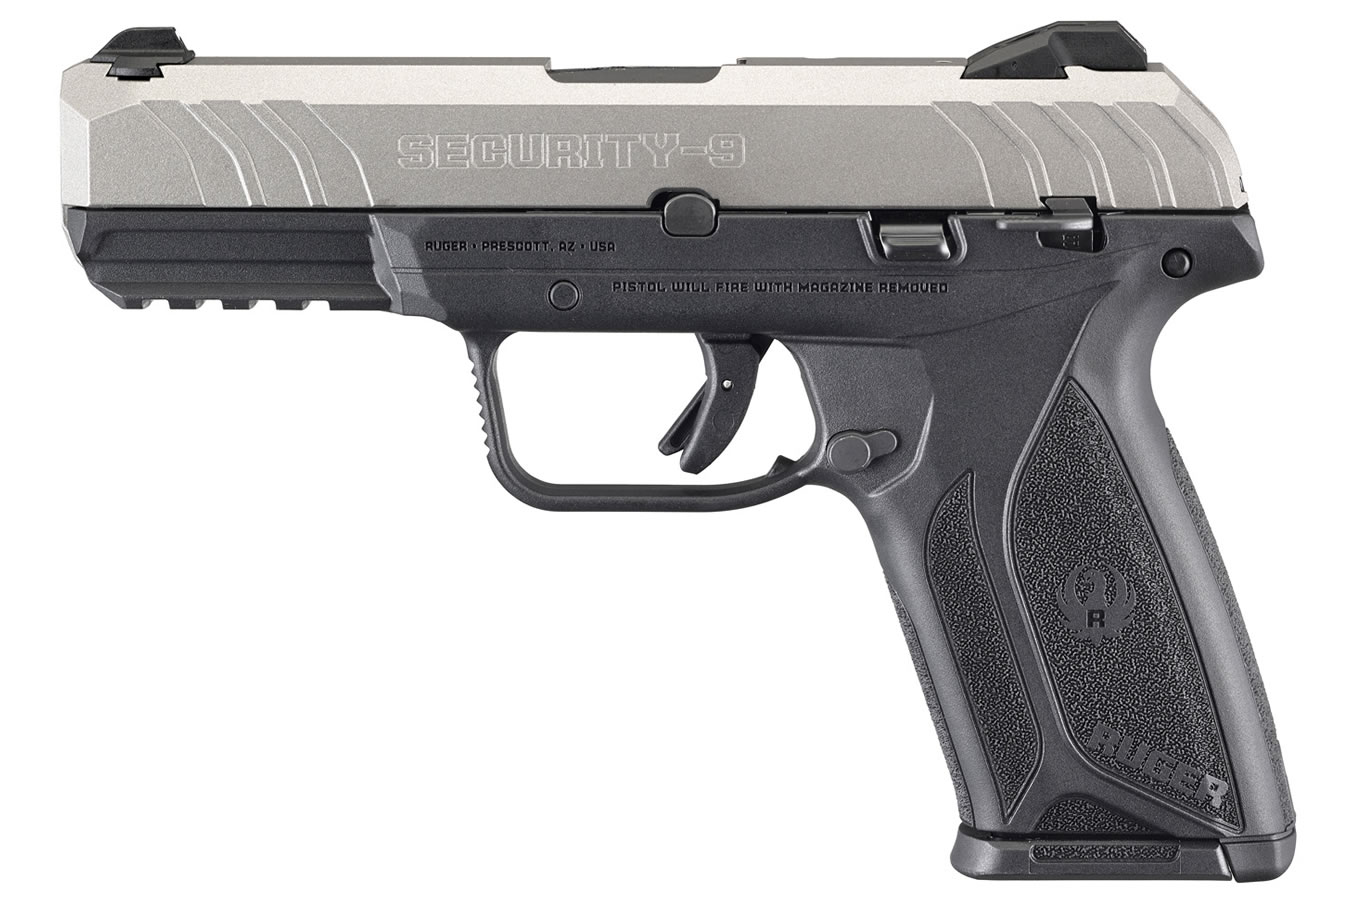 Ruger Security 9 9mm Pistol With Silver